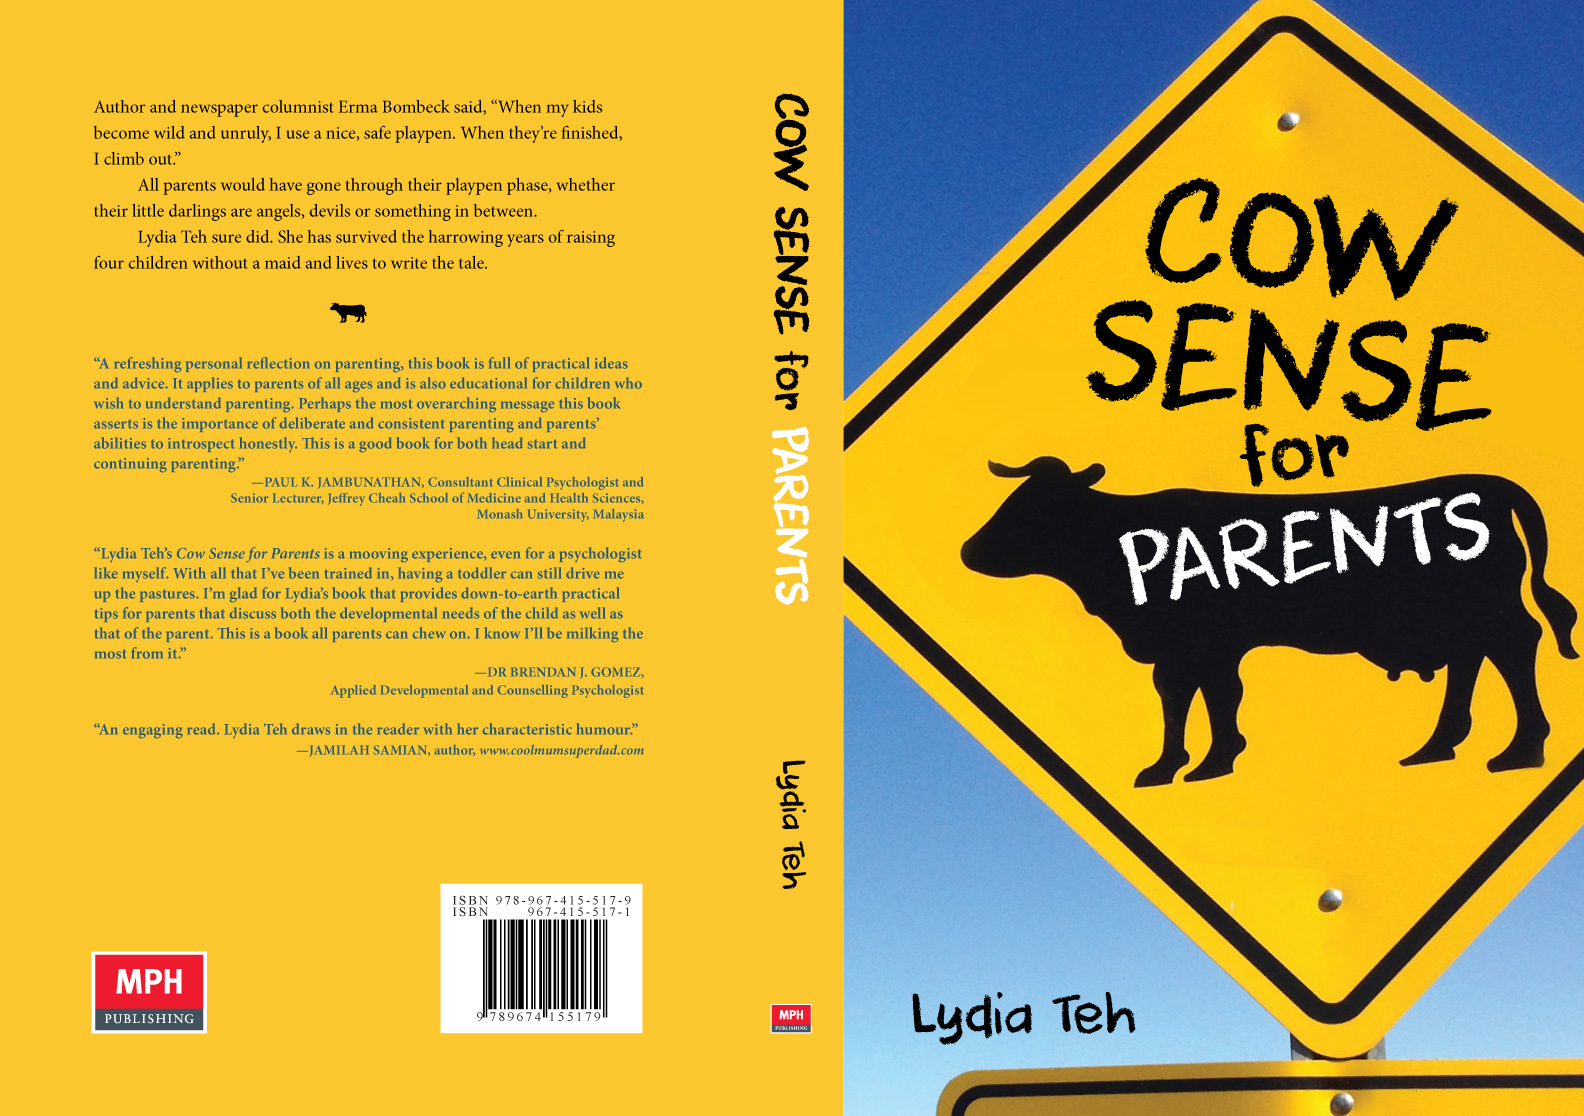 Cow Sense for Parents: 5 Books Giveaway this Mother's Day